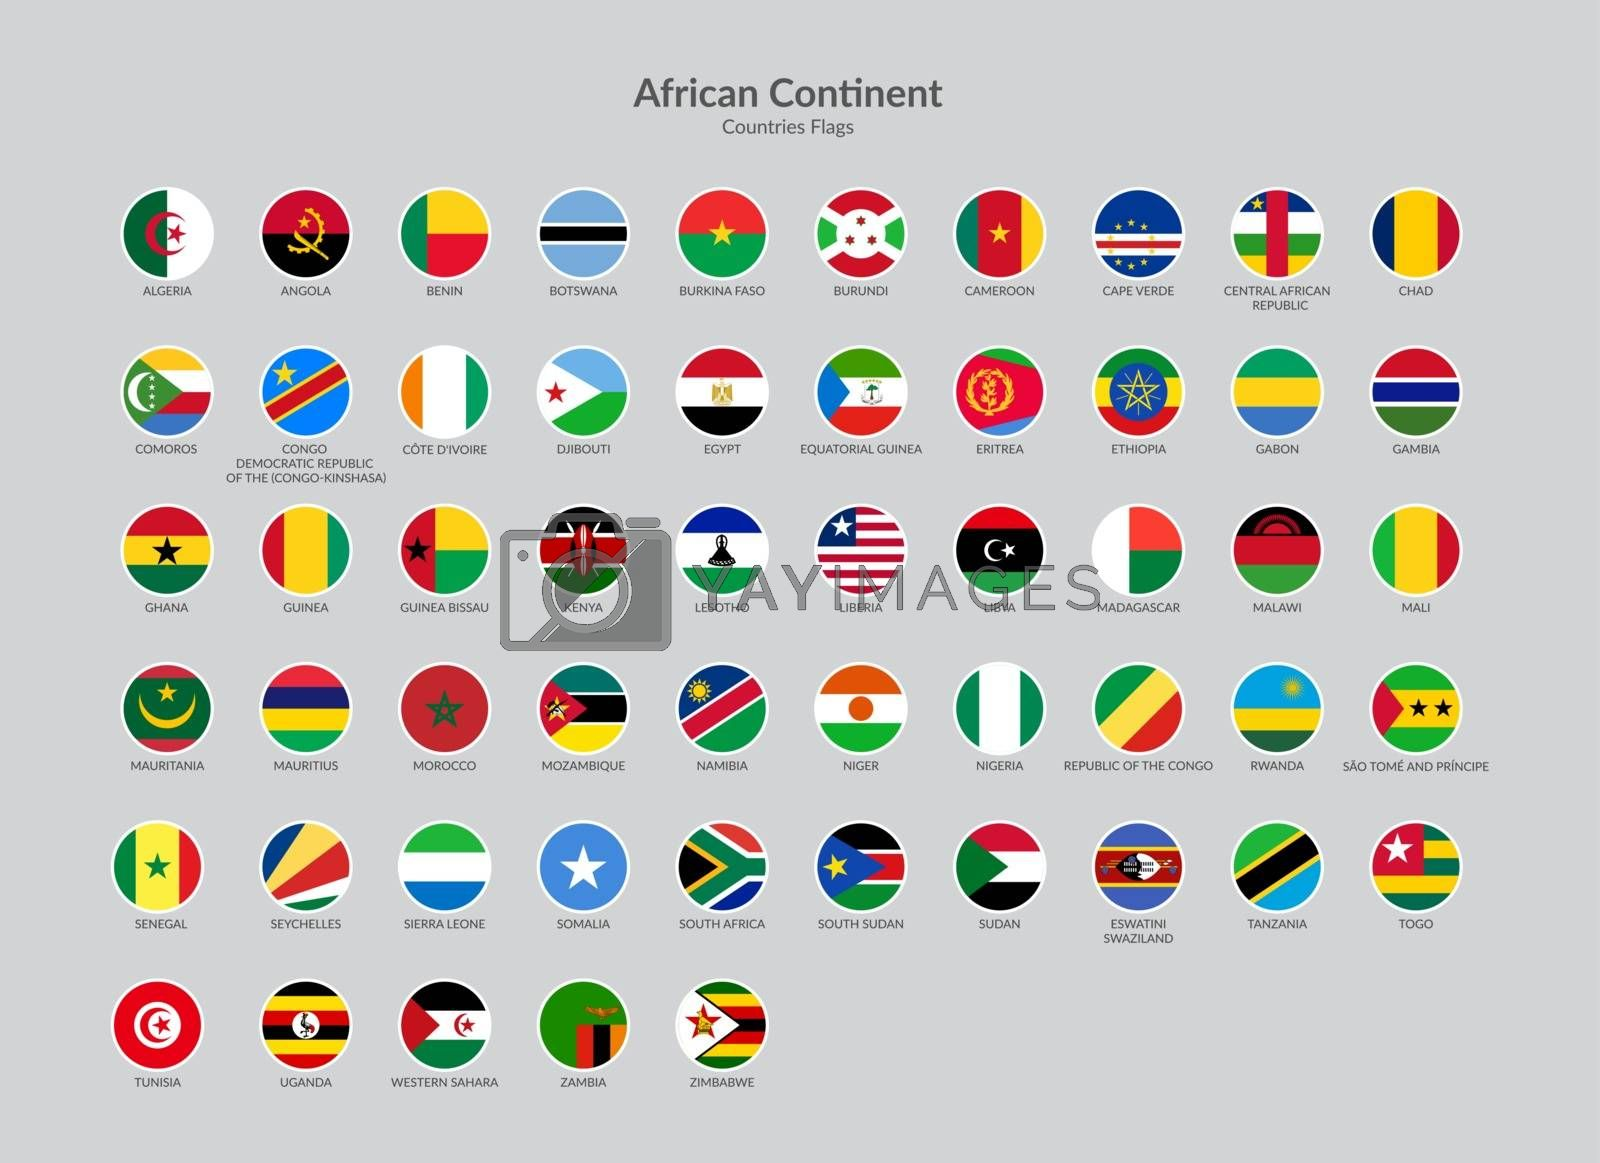 African Continent countries flag icons collection